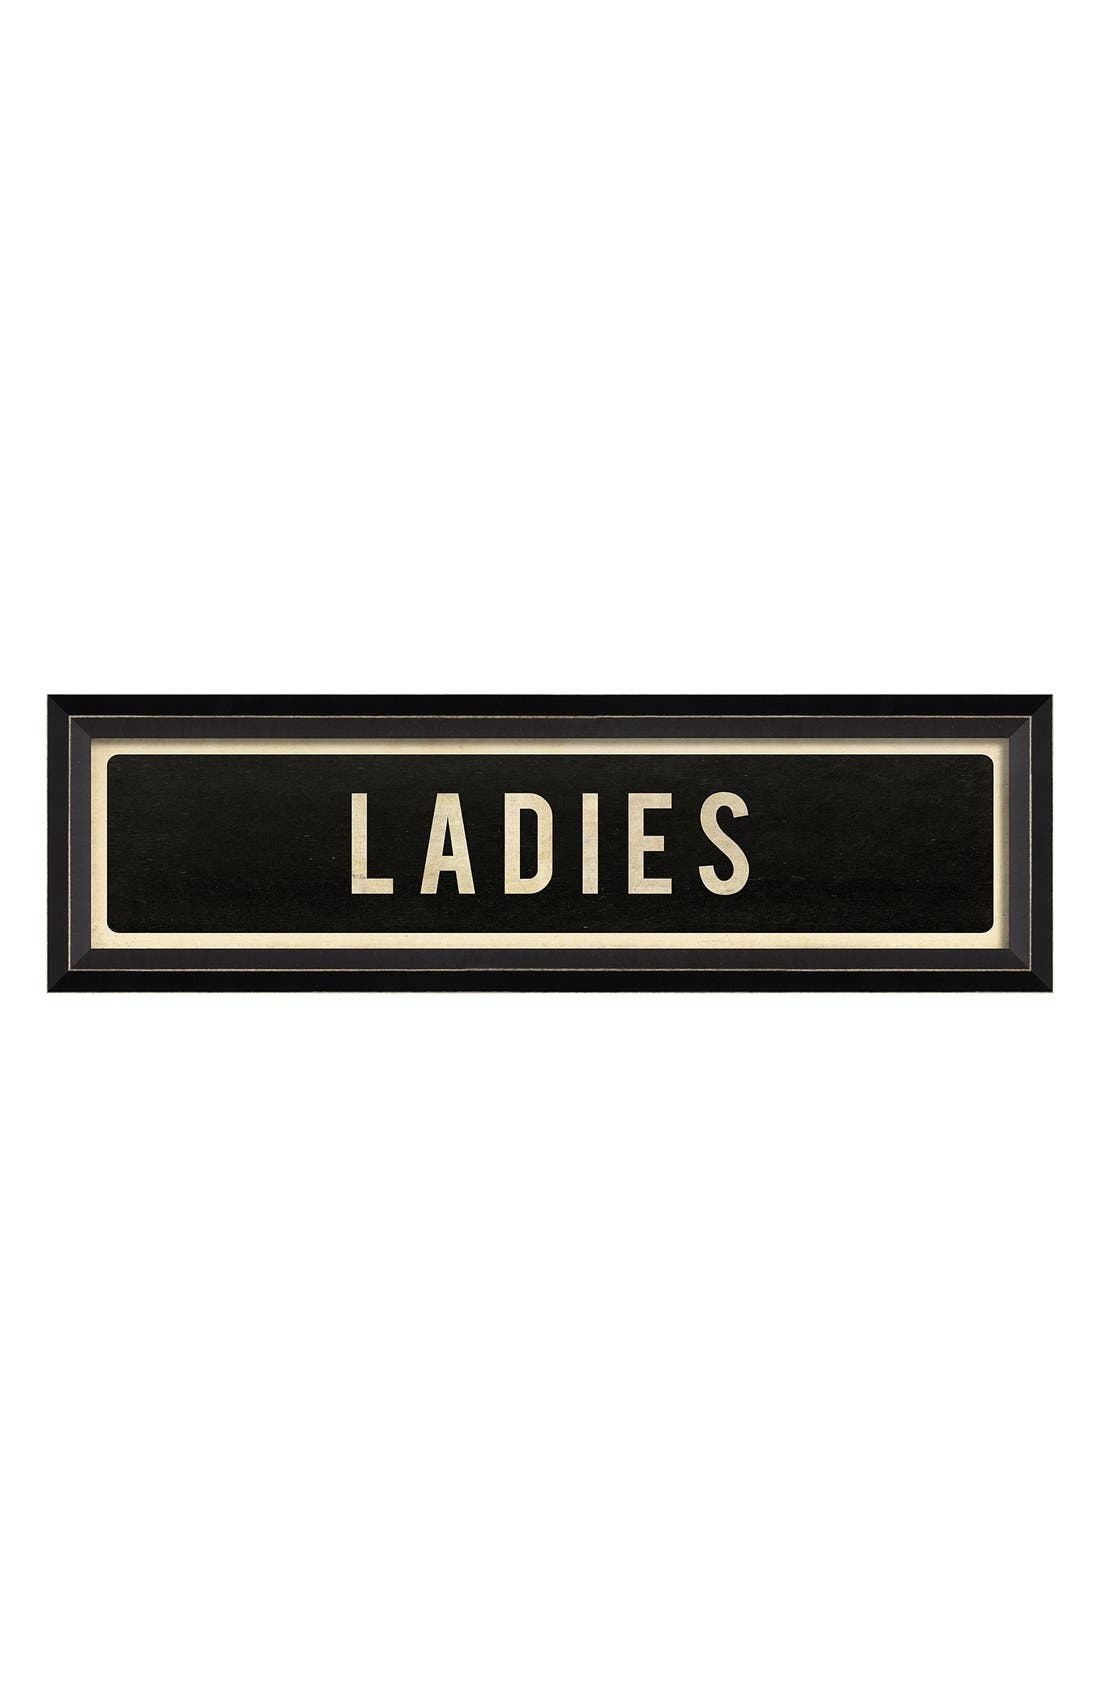 Main Image - Spicher and Company 'Ladies' Vintage Look Sign Artwork